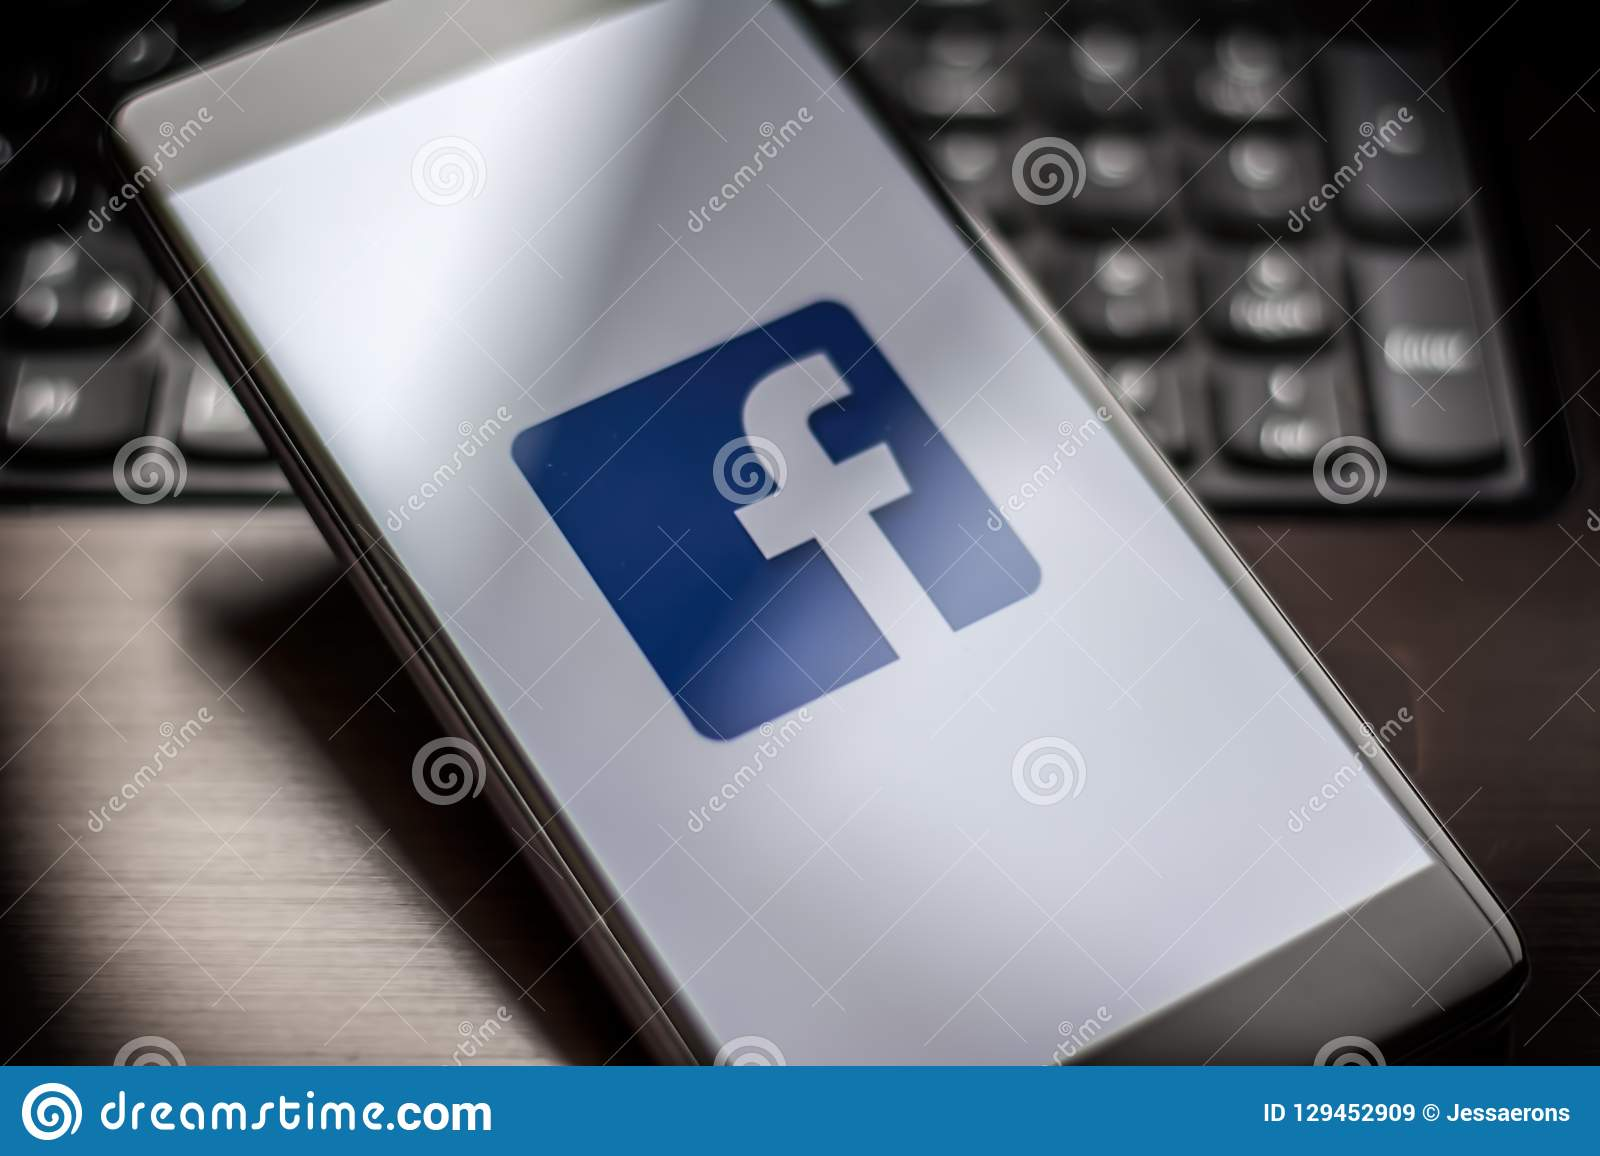 Facebook page on the smartphone on table